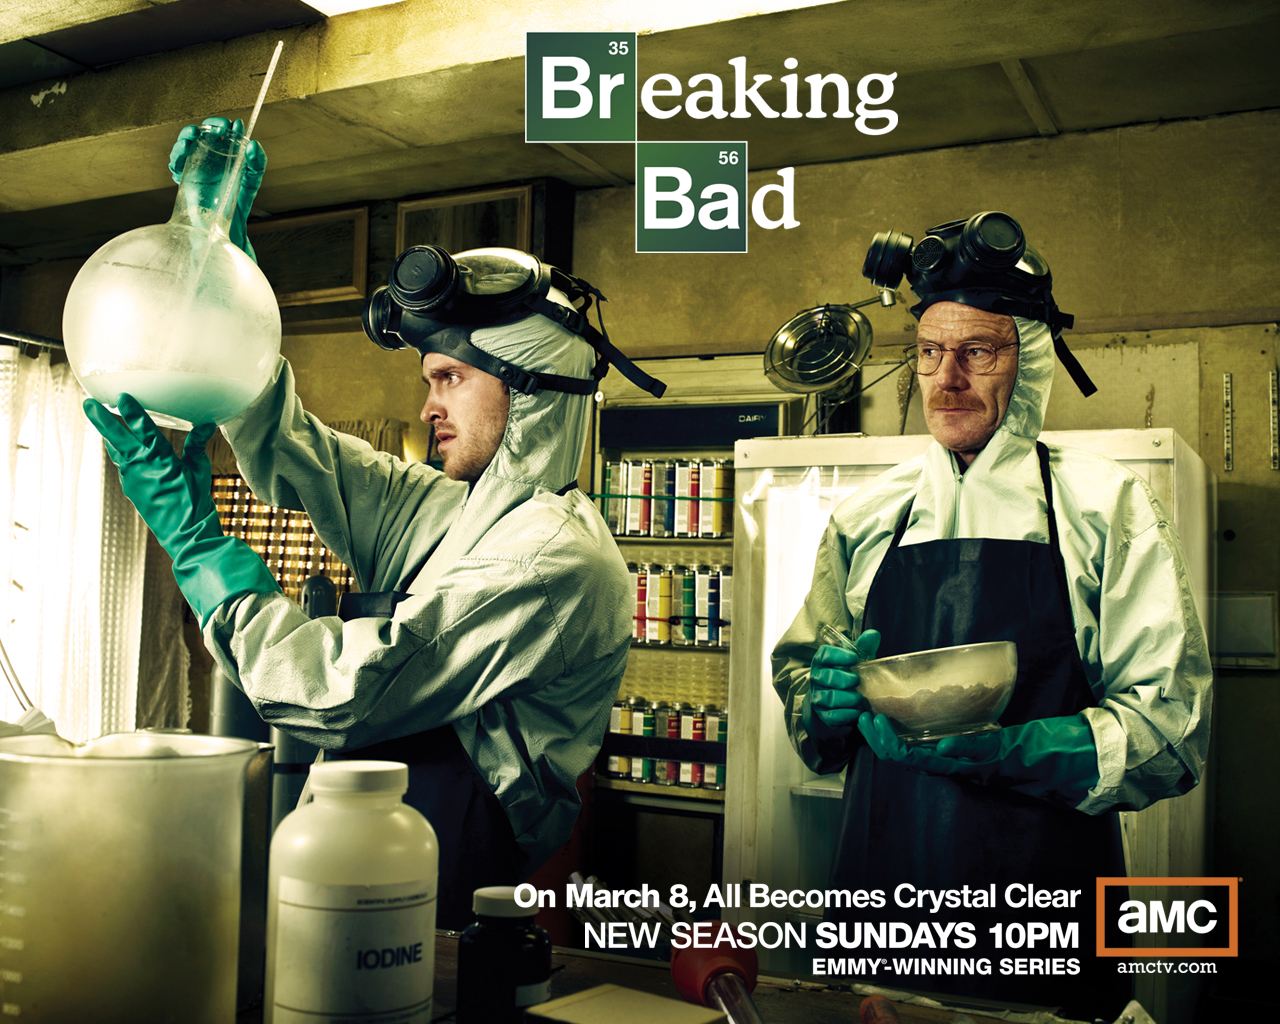 [FS] [HDTV] Breaking Bad Saison 04 Episode 07